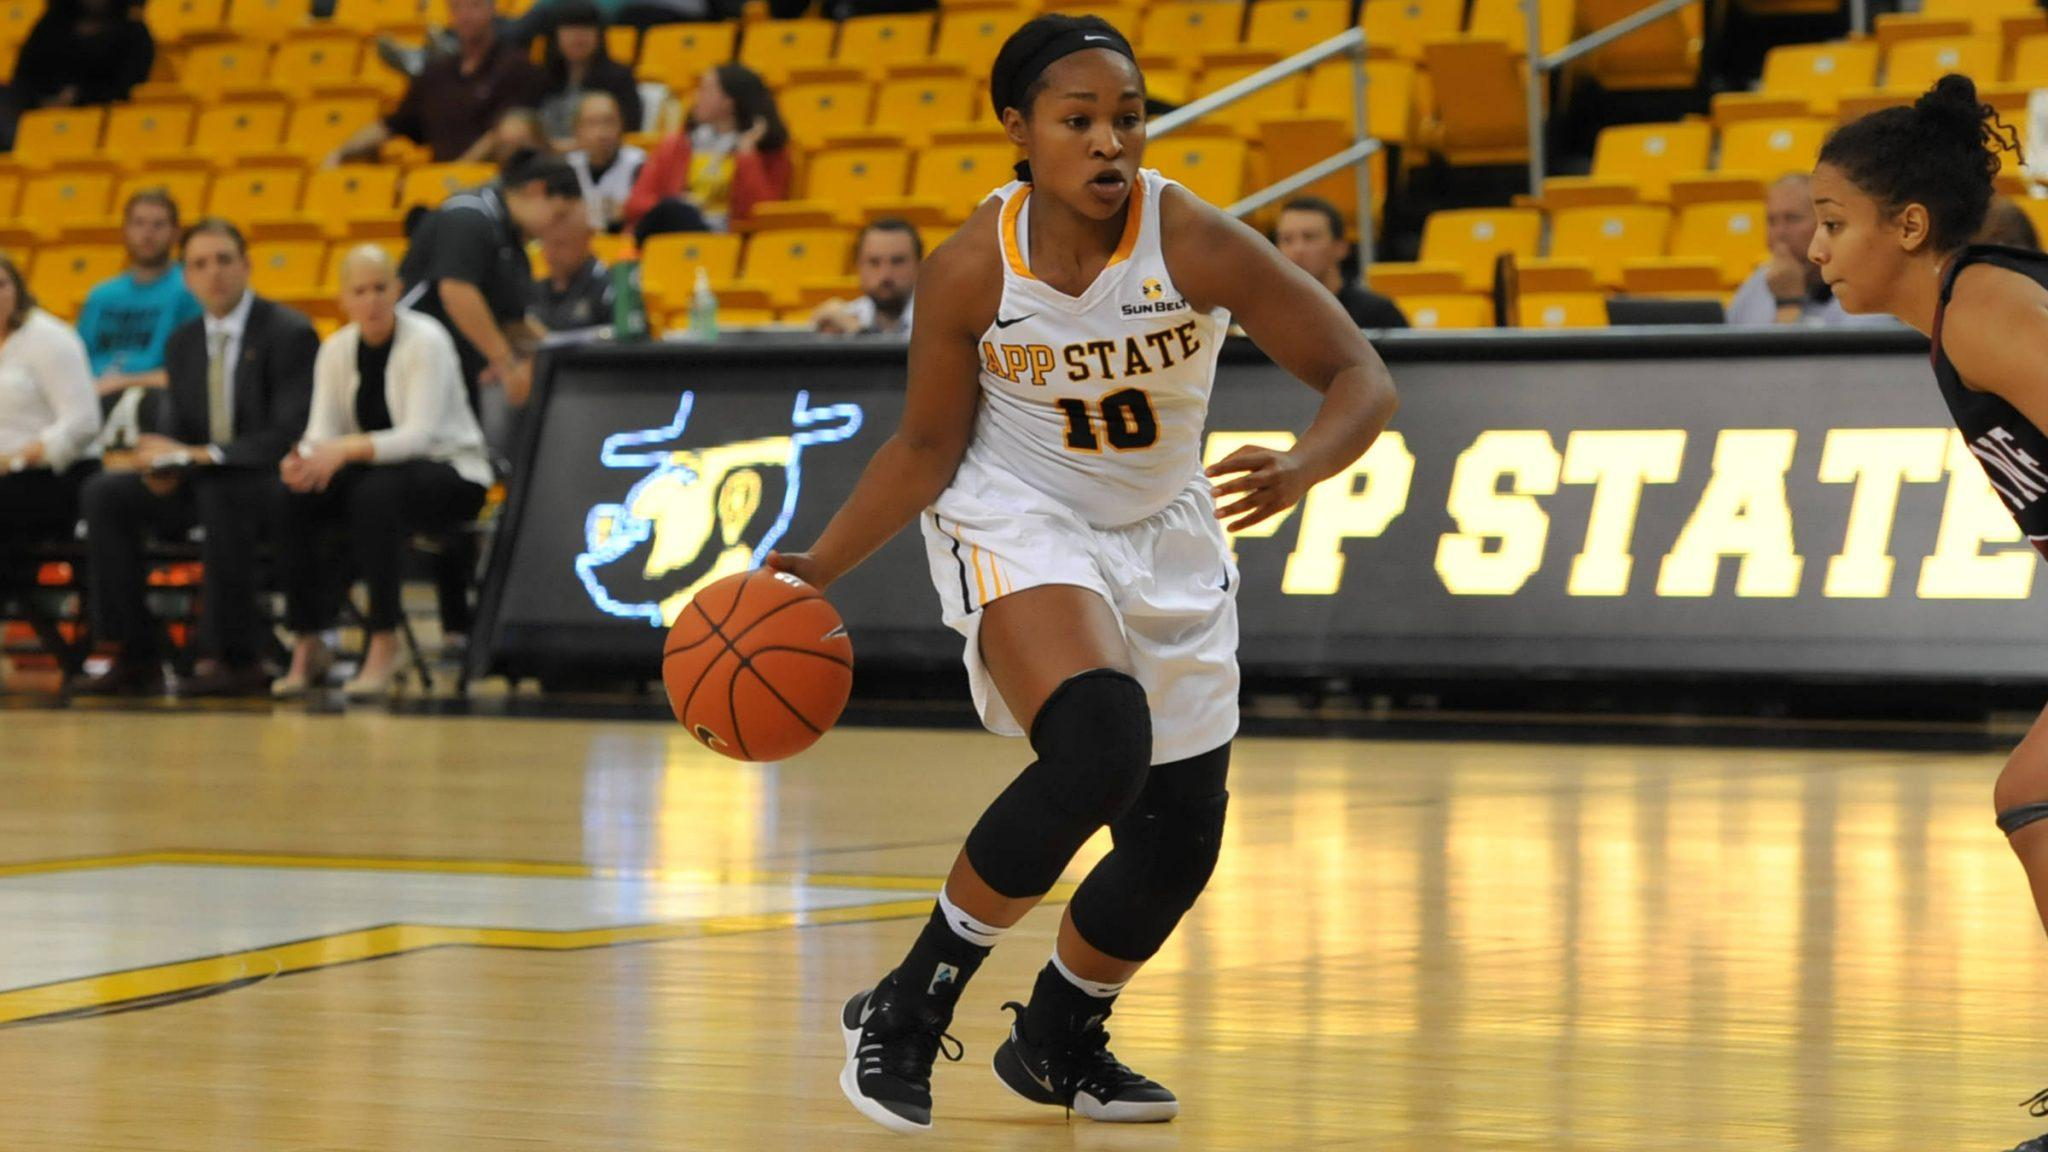 Guard+Joi+Jones+looks+to+drive+with+the+ball+during+Monday%27s+exhibition.+She+finished+with+10+points+on+the+night.%0APhoto+courtesy%3A+App+State+Athletics%2FDave+Mayo